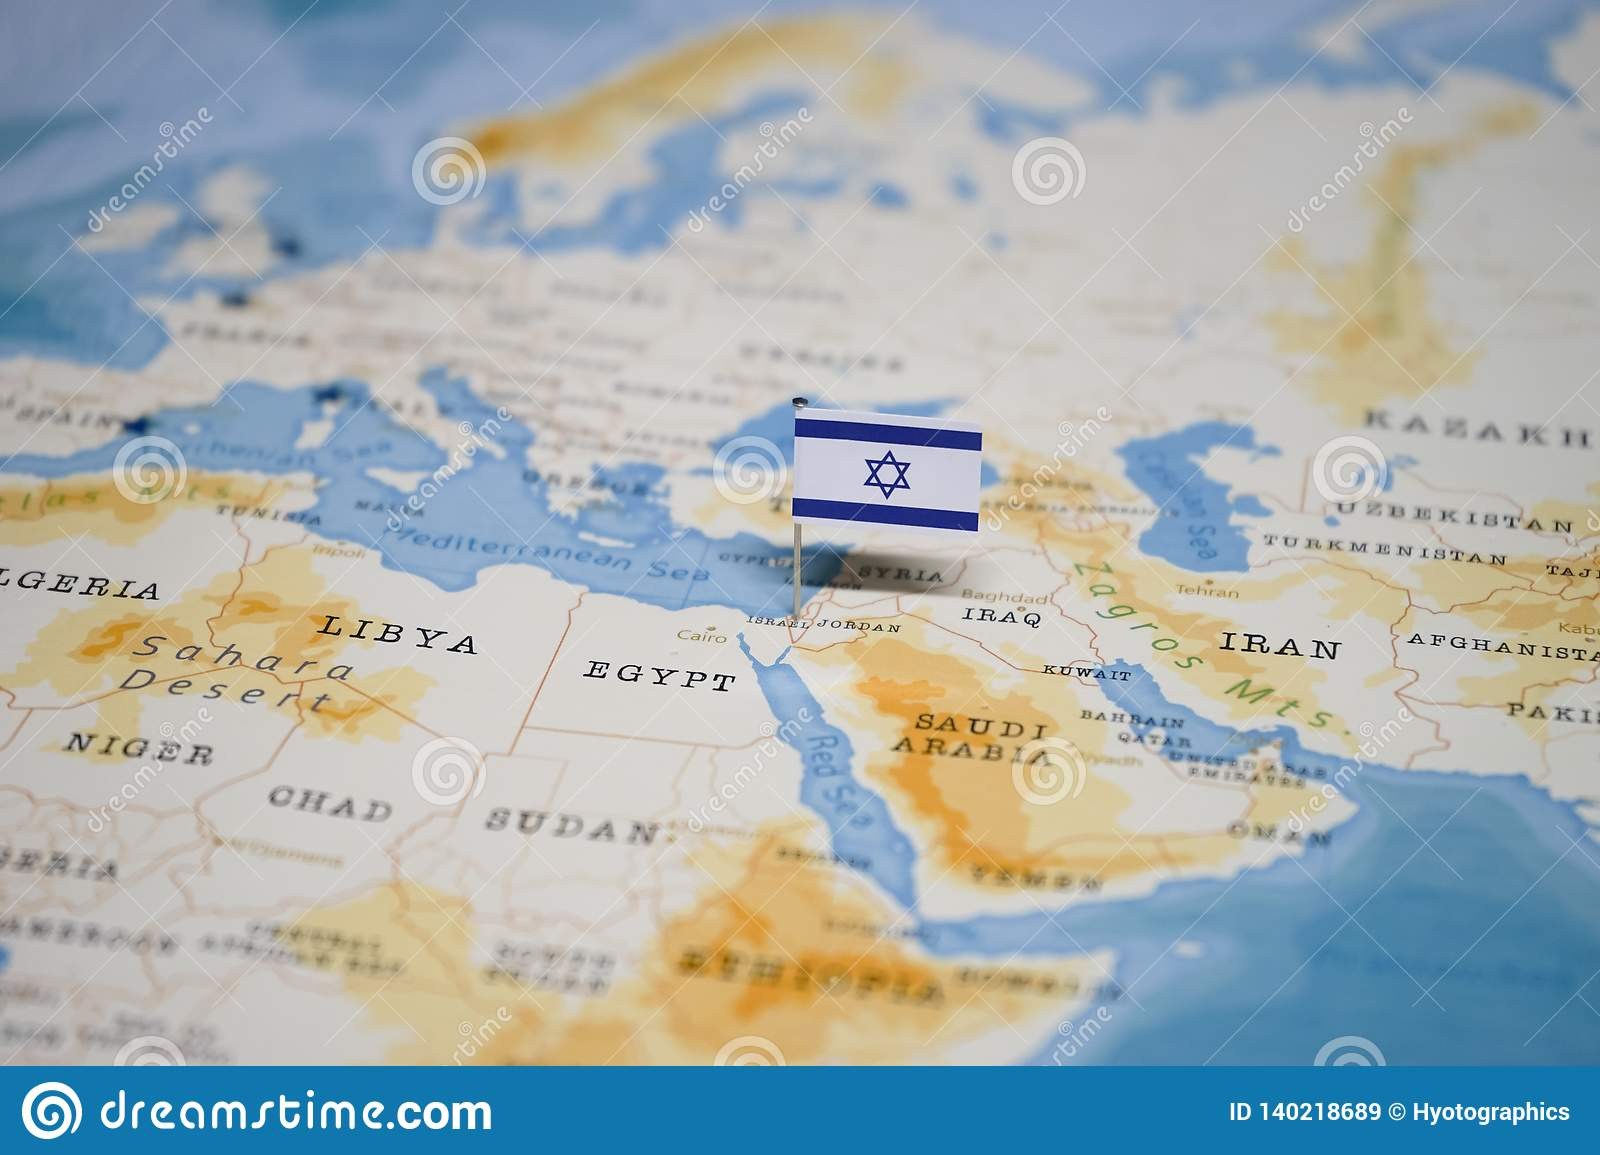 The Flag Of Israel In The World Map Stock Image - Image of ...